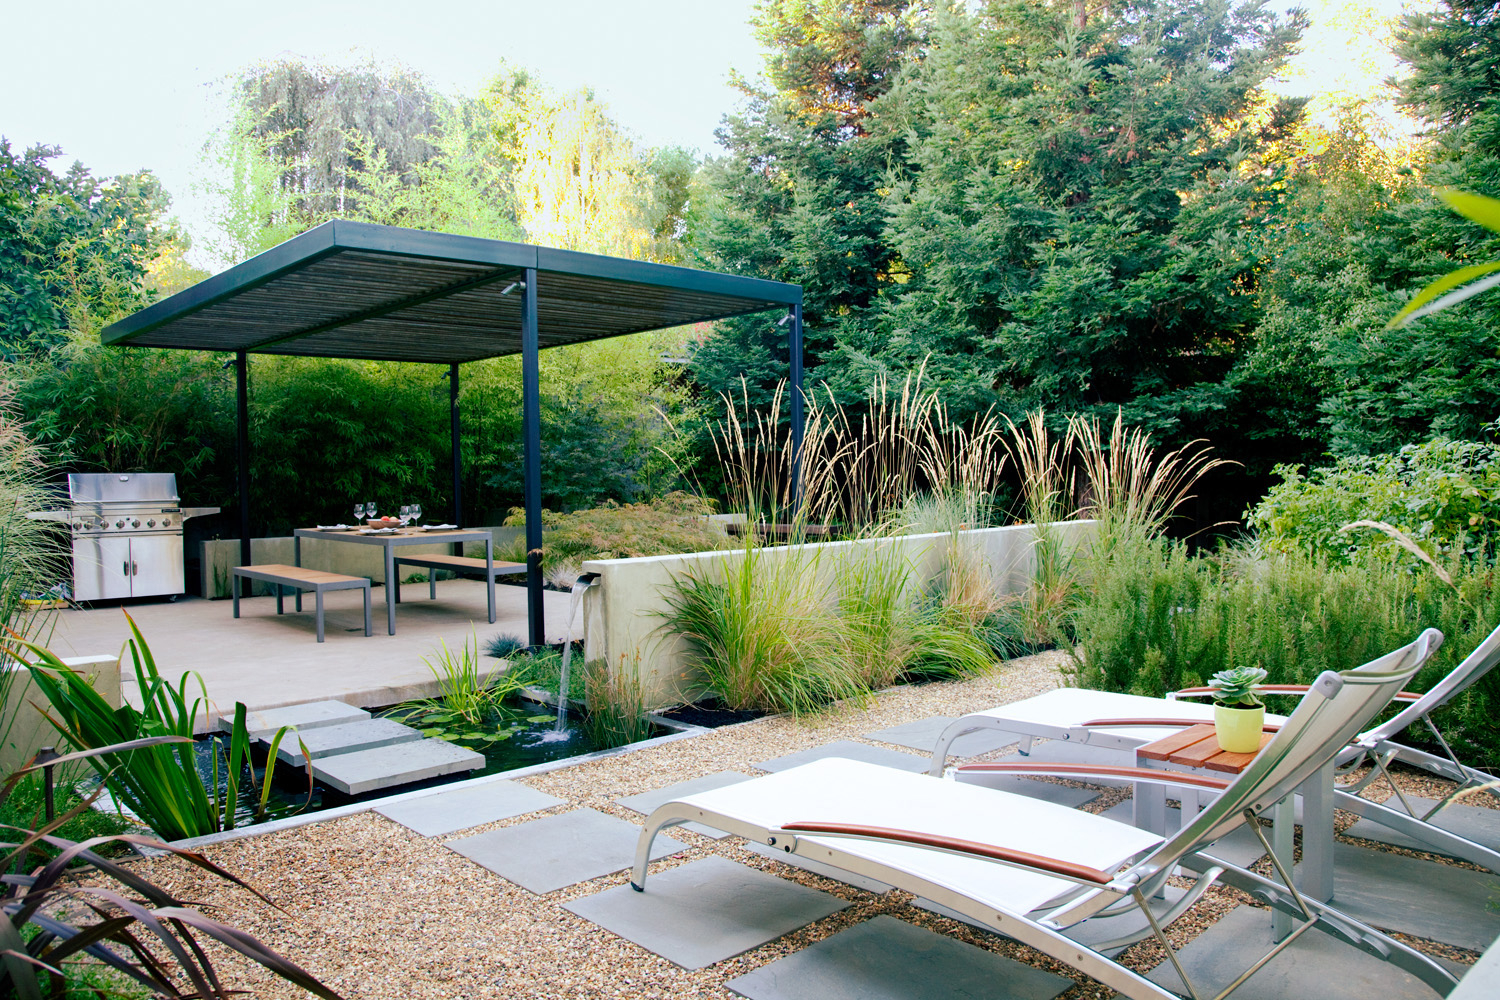 Small Backyard Design Ideas Sunset Magazine intended for Ideas For Small Backyard Spaces